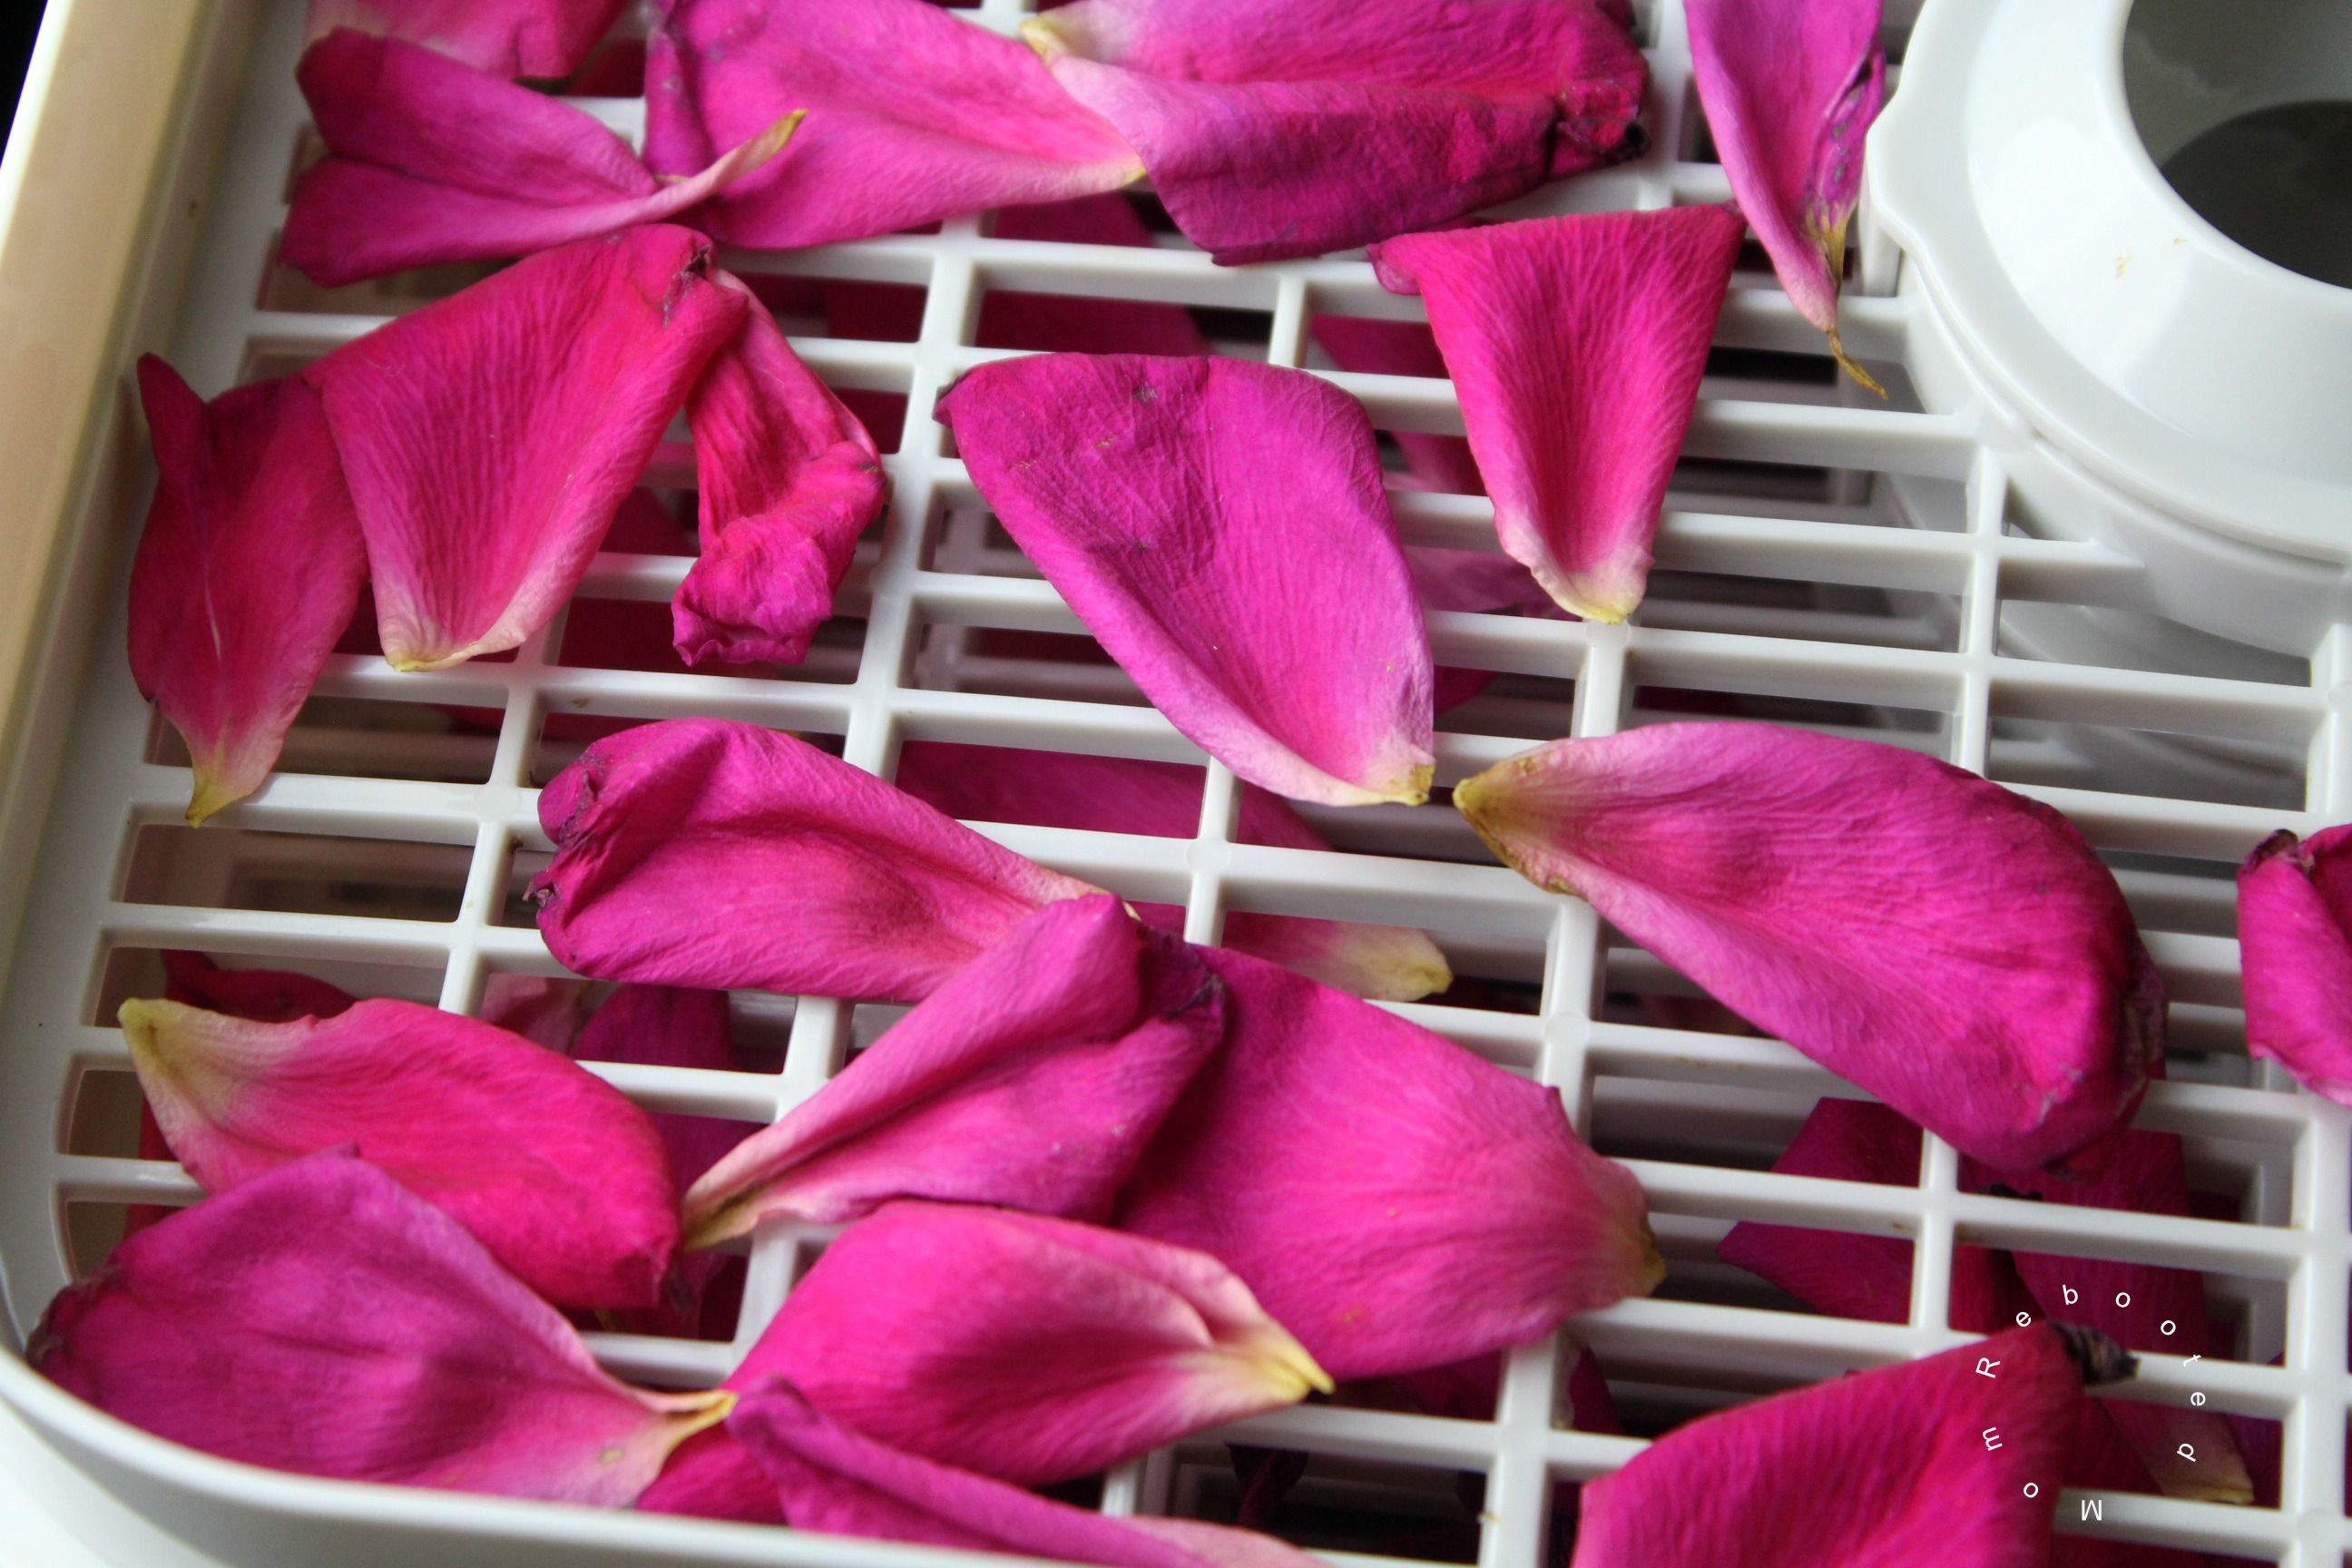 Here's everything you need to know about drying rose petals for tea, crafts and making your own rose-infused kombucha brew.